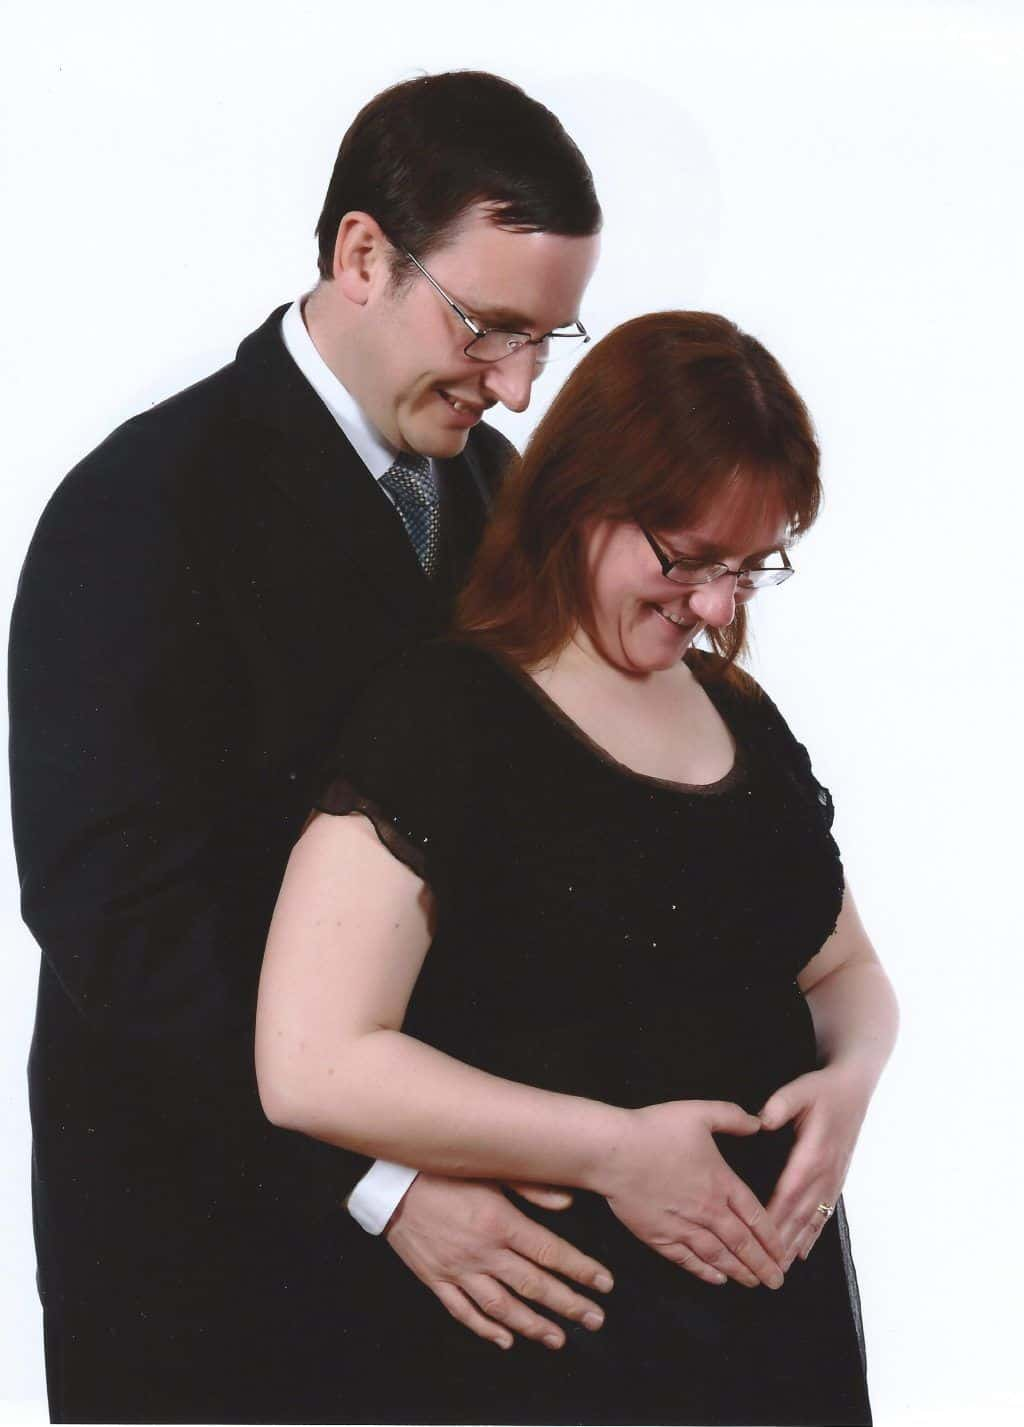 Pregnant lady with hands in heart shape on her tummy